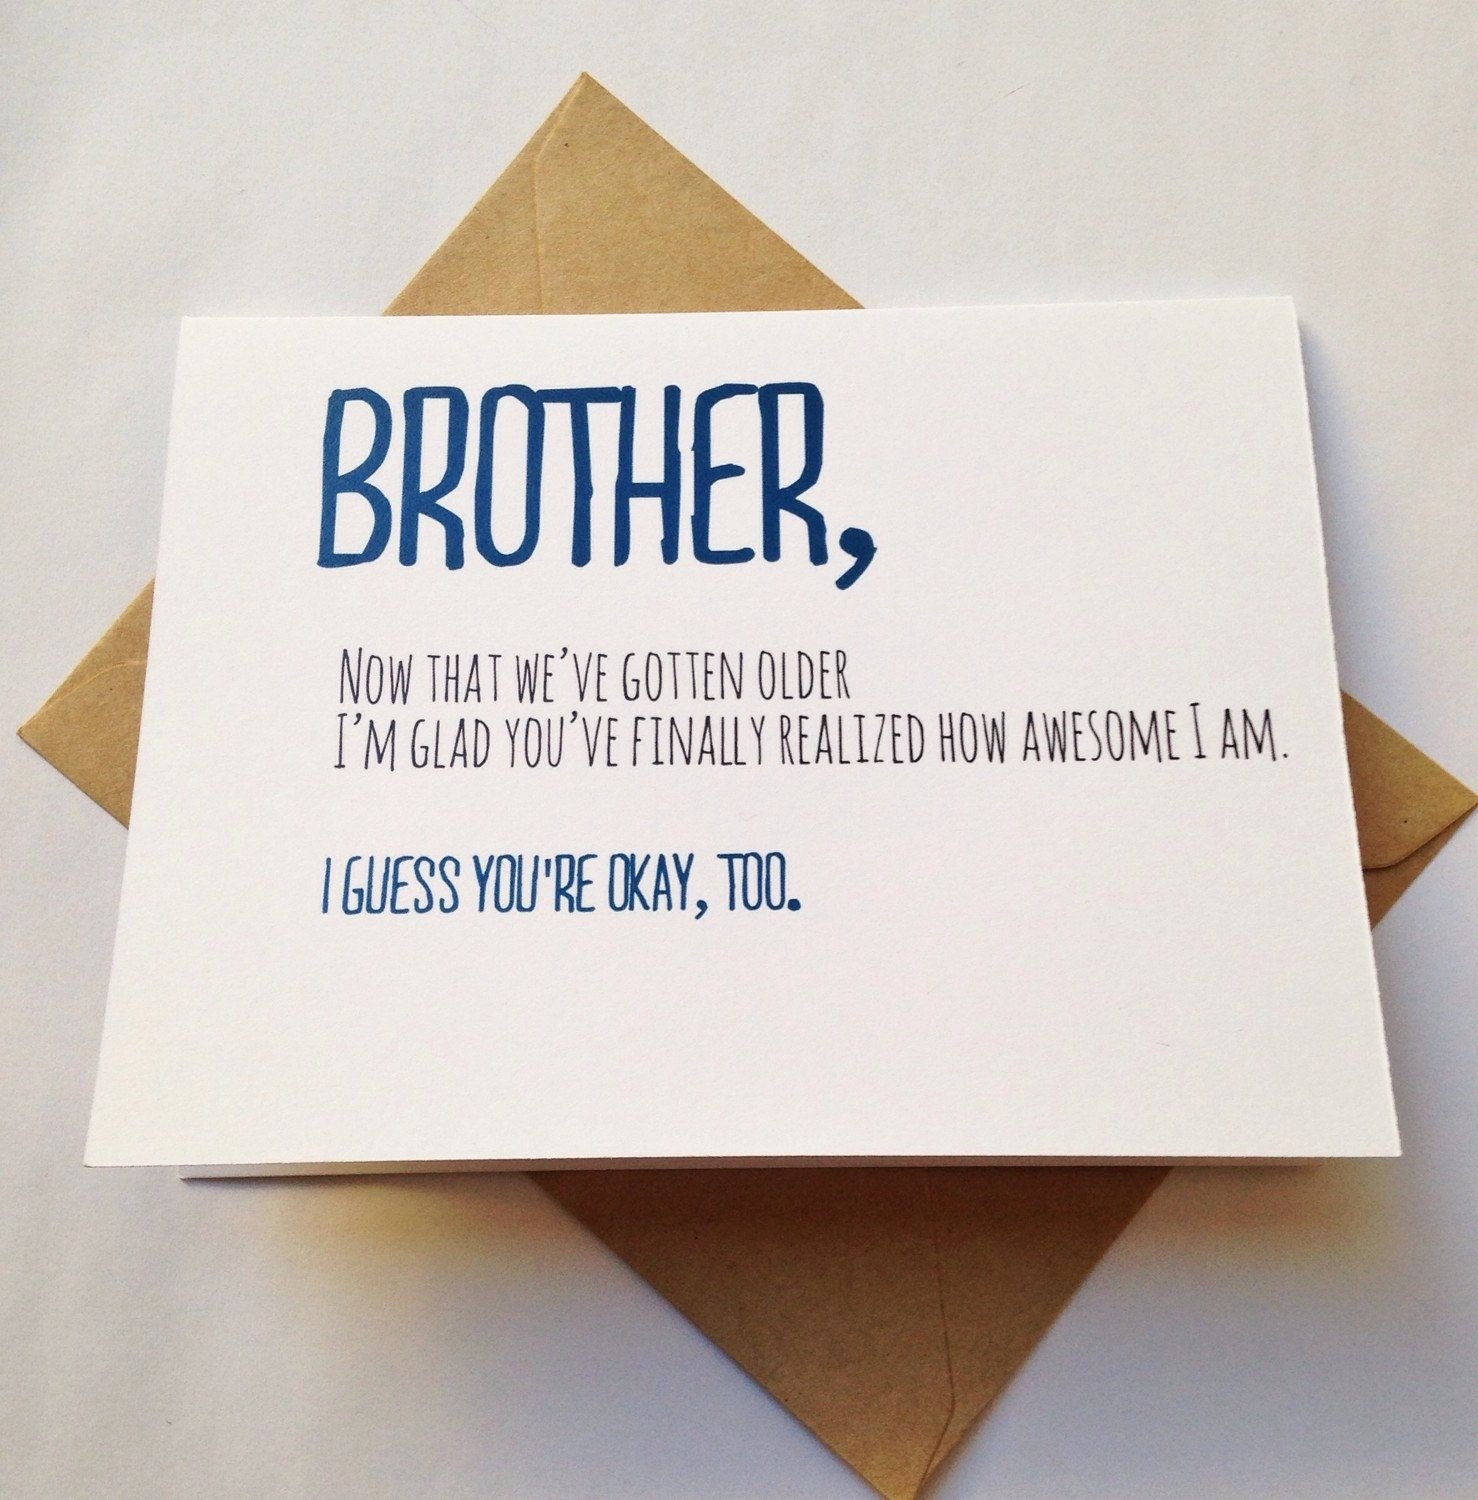 happy birthday card for brother from sister ; best-birthday-greeting-cards-for-brother-awesome-brother-card-brother-birthday-card-funny-card-card-for-of-best-birthday-greeting-cards-for-brother